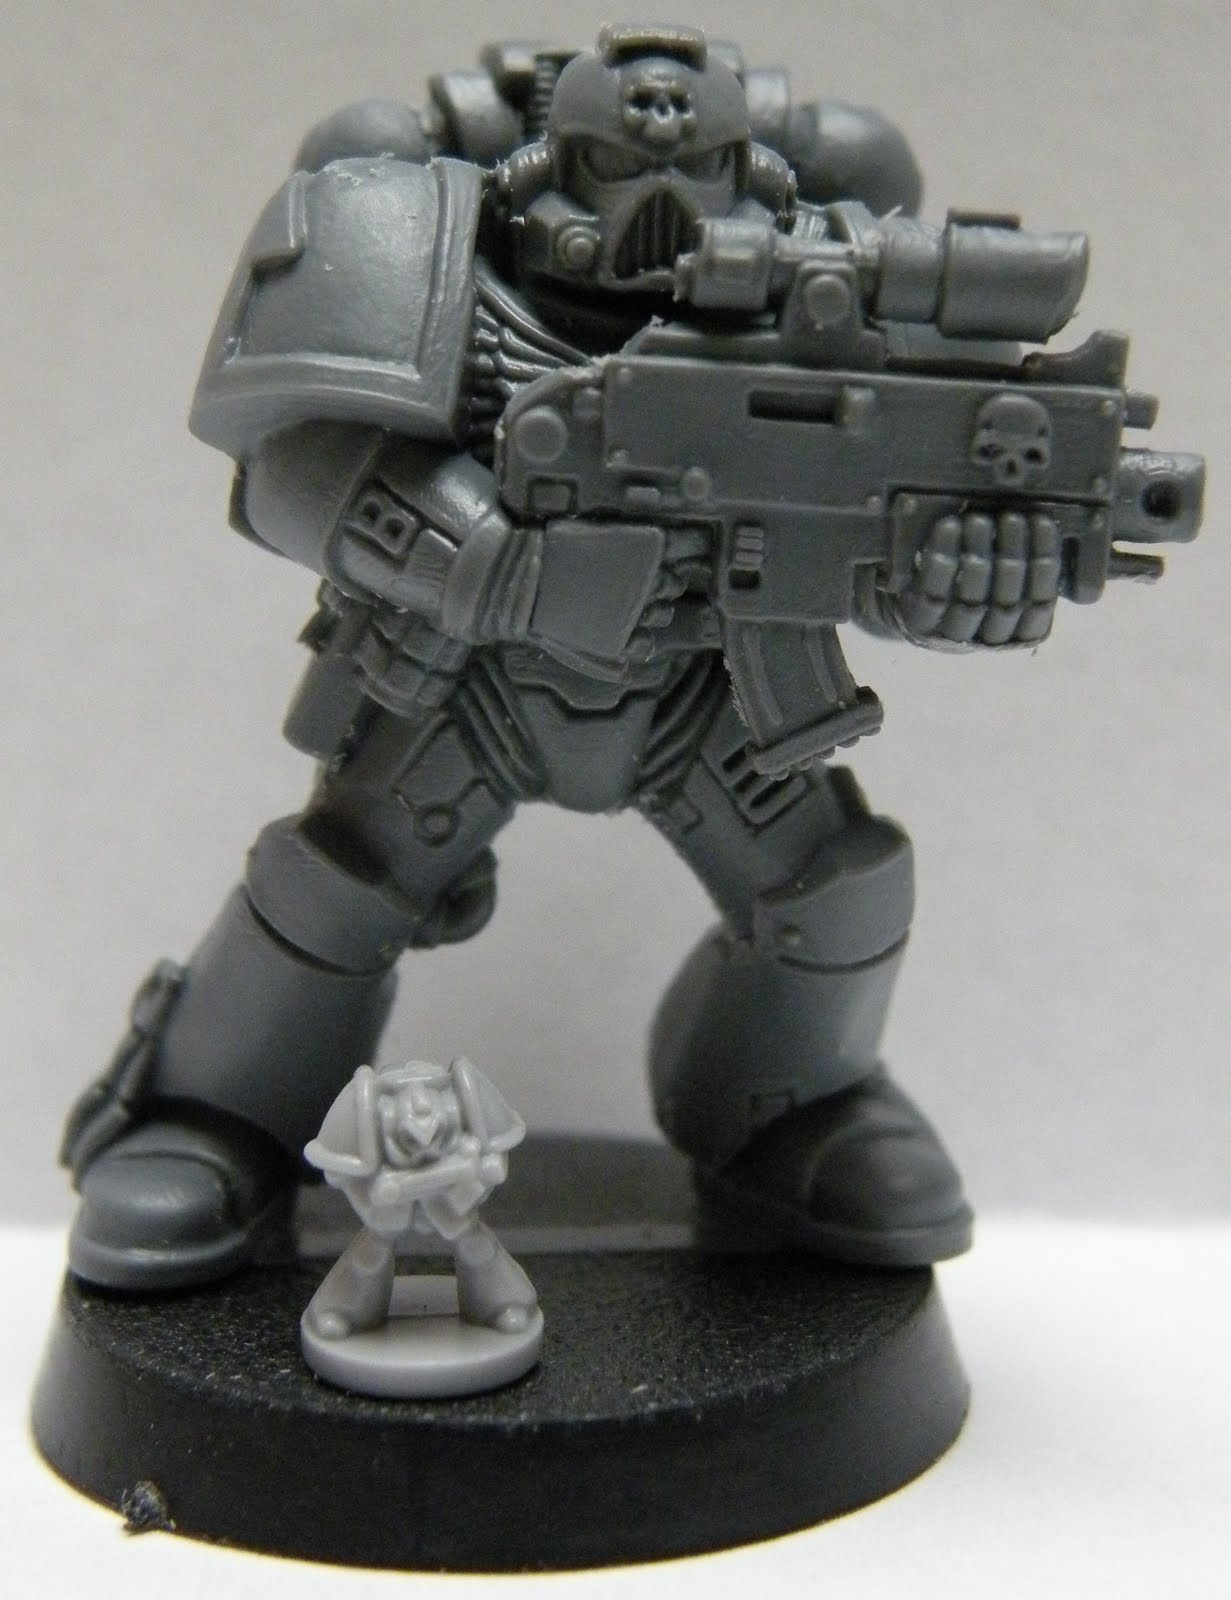 Sons of Twilight: Epic to 40 K Size Comparison